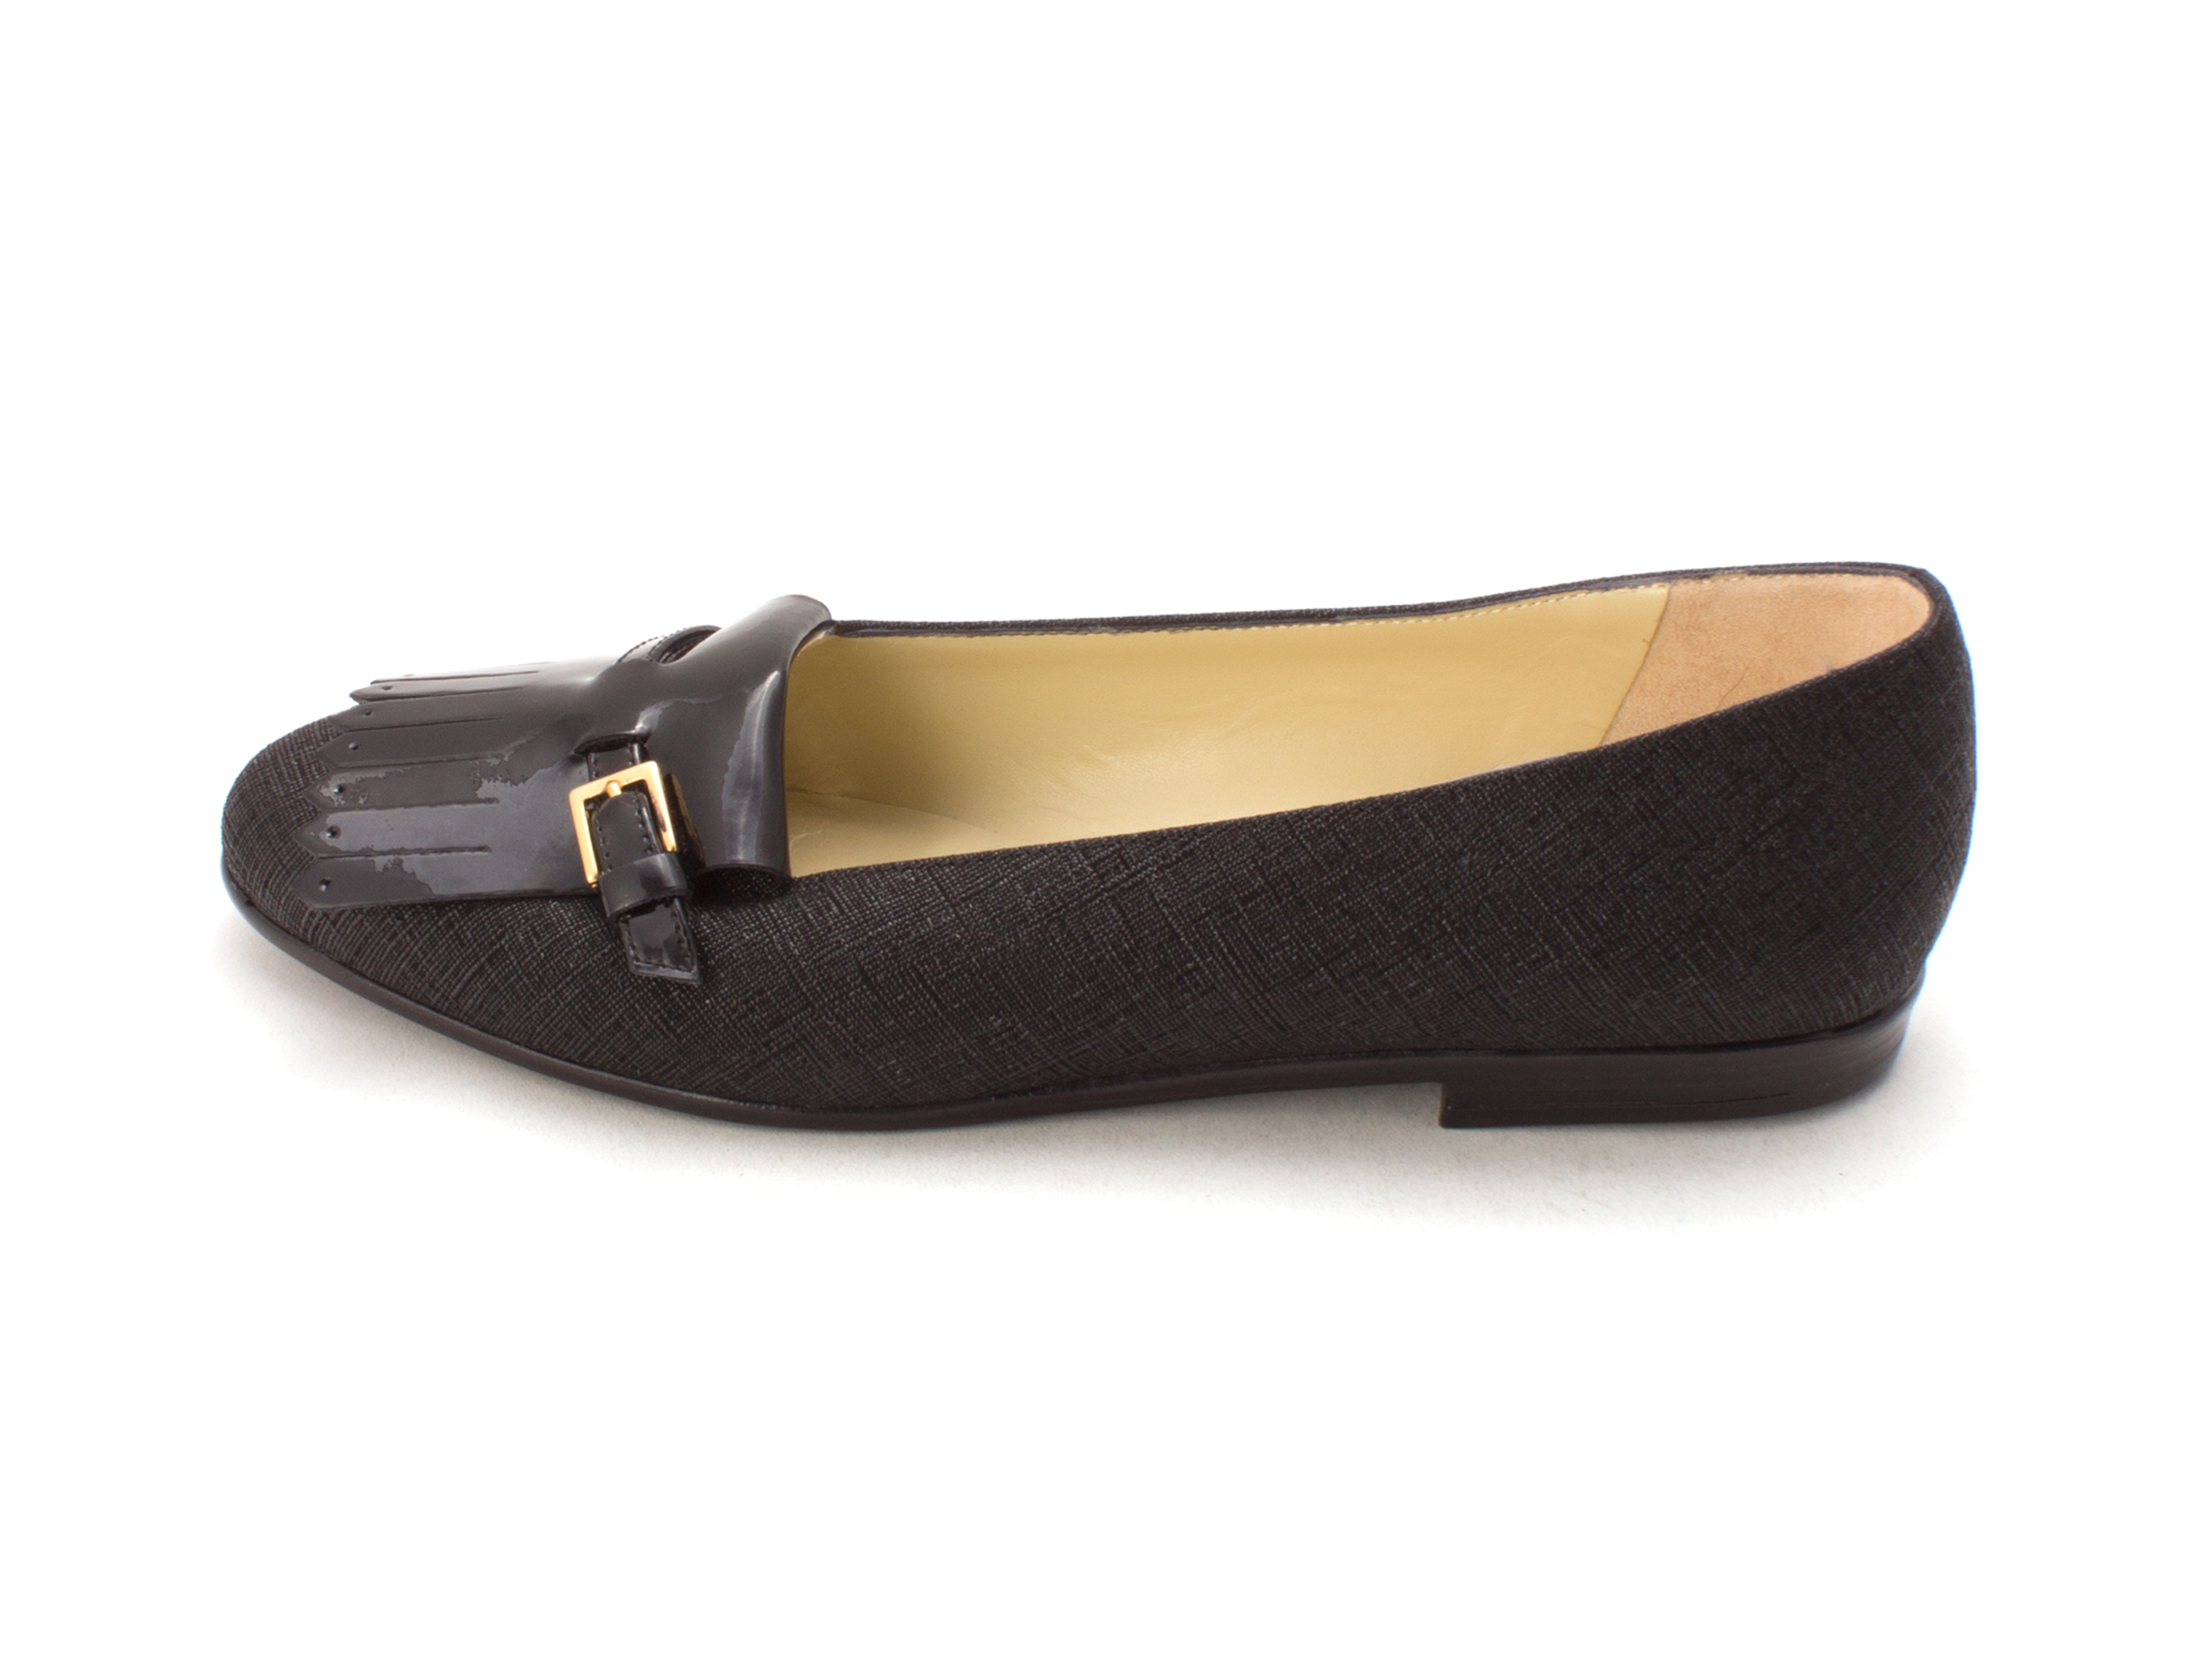 Amalfi by Rangoni Womens Olmar Closed Toe Loafers, Black, Size 9.0 by Amalfi by Rangoni